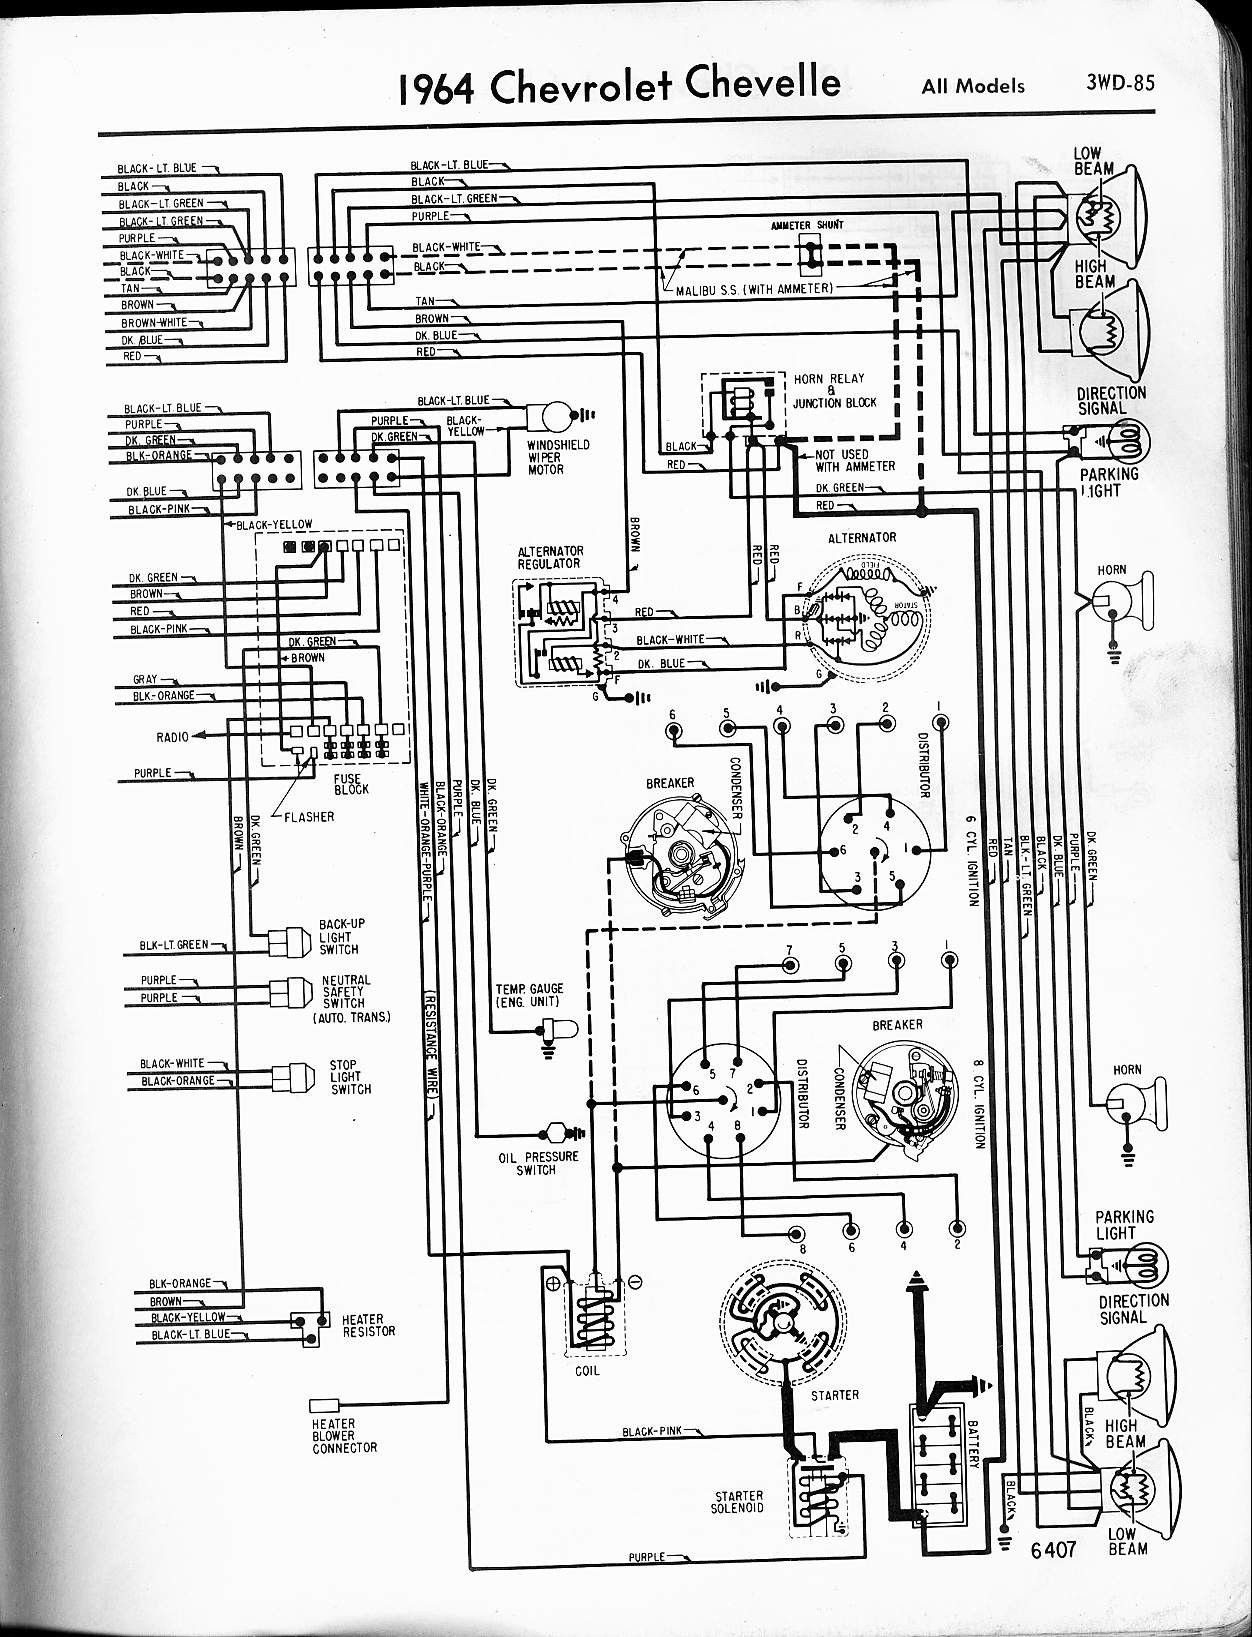 1970 chevelle voltage regulator wiring diagram bgmt data u2022 rh app  carrot ie 1964 Chevelle Fuse Panel Chevelle Wiring Schematics